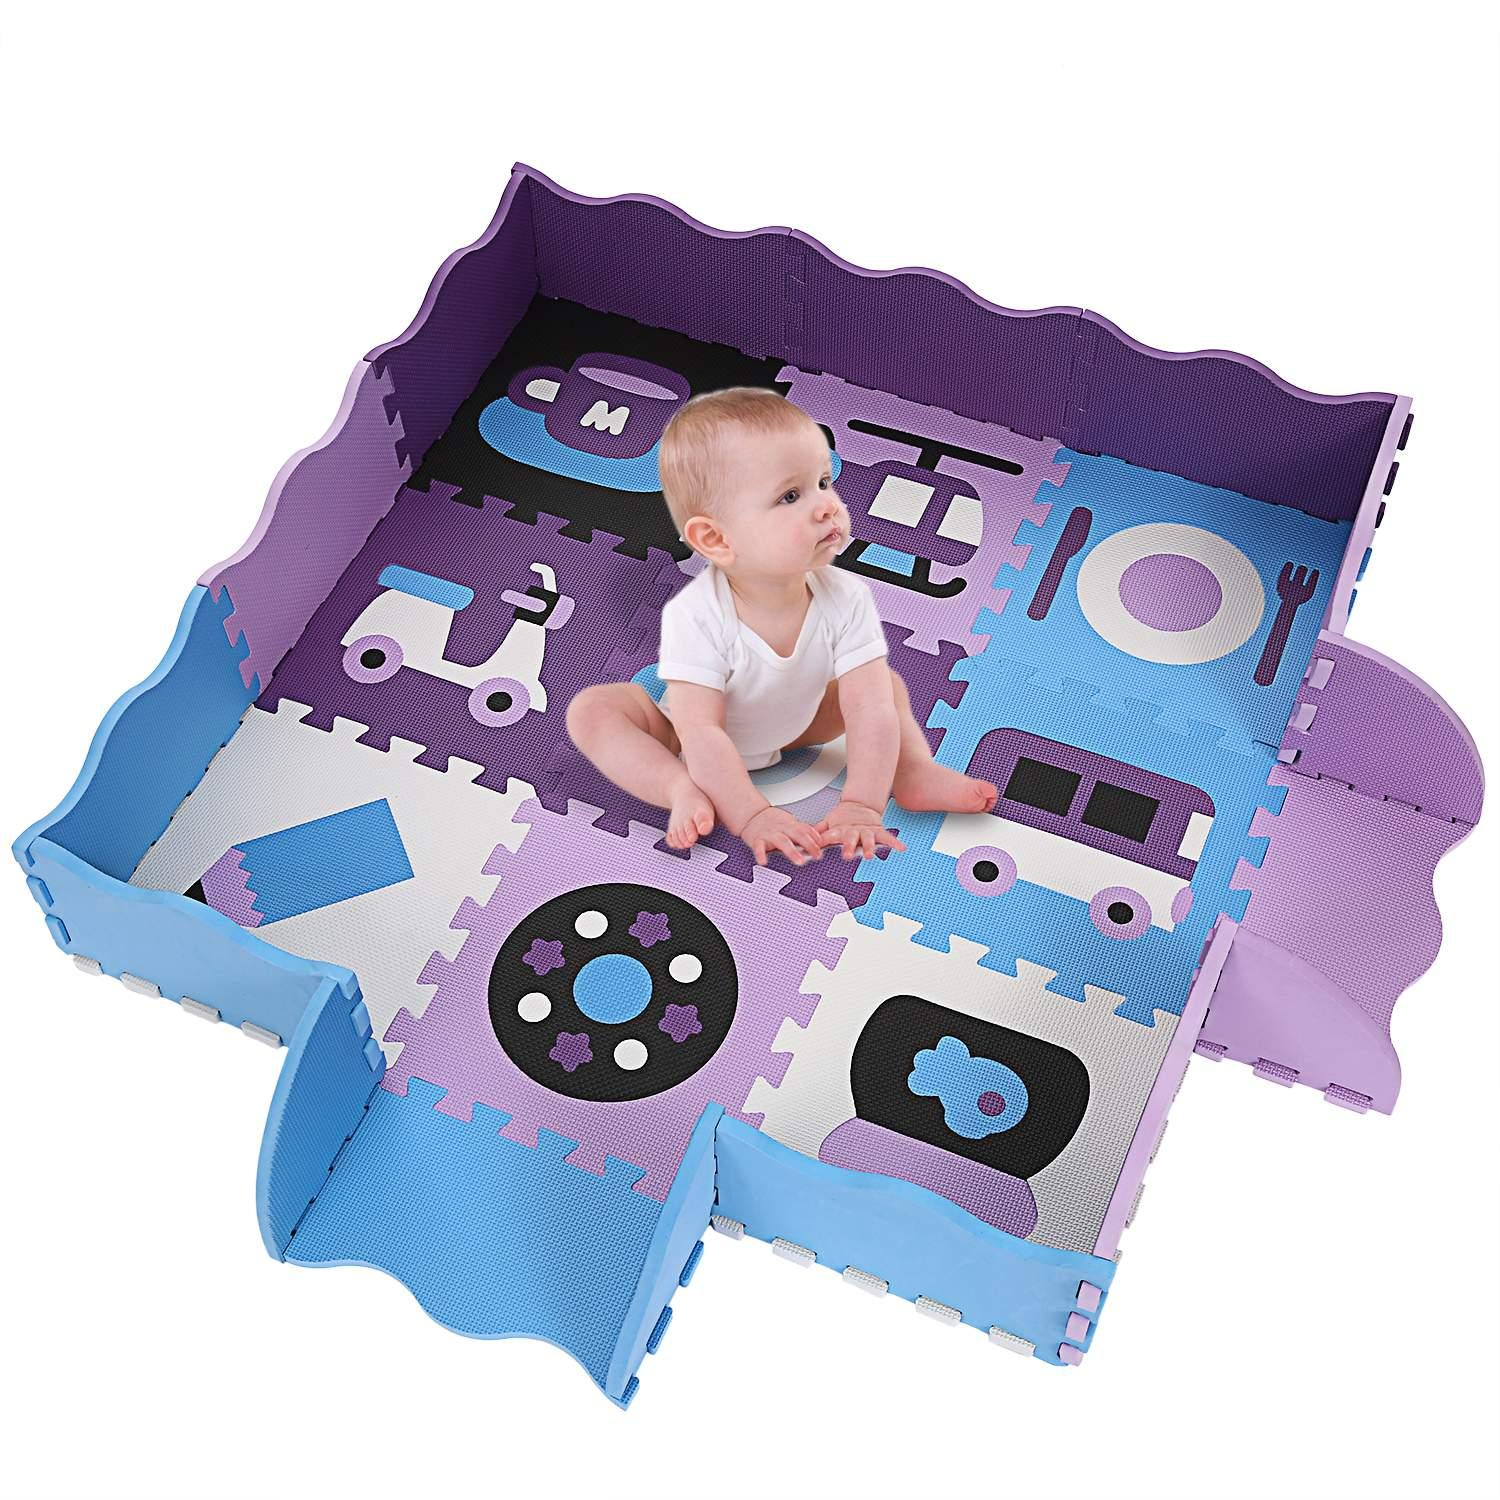 New Kids Baby Non-Toxic Extra Thick Foam Large with Gate Fence Crawling Play Mat